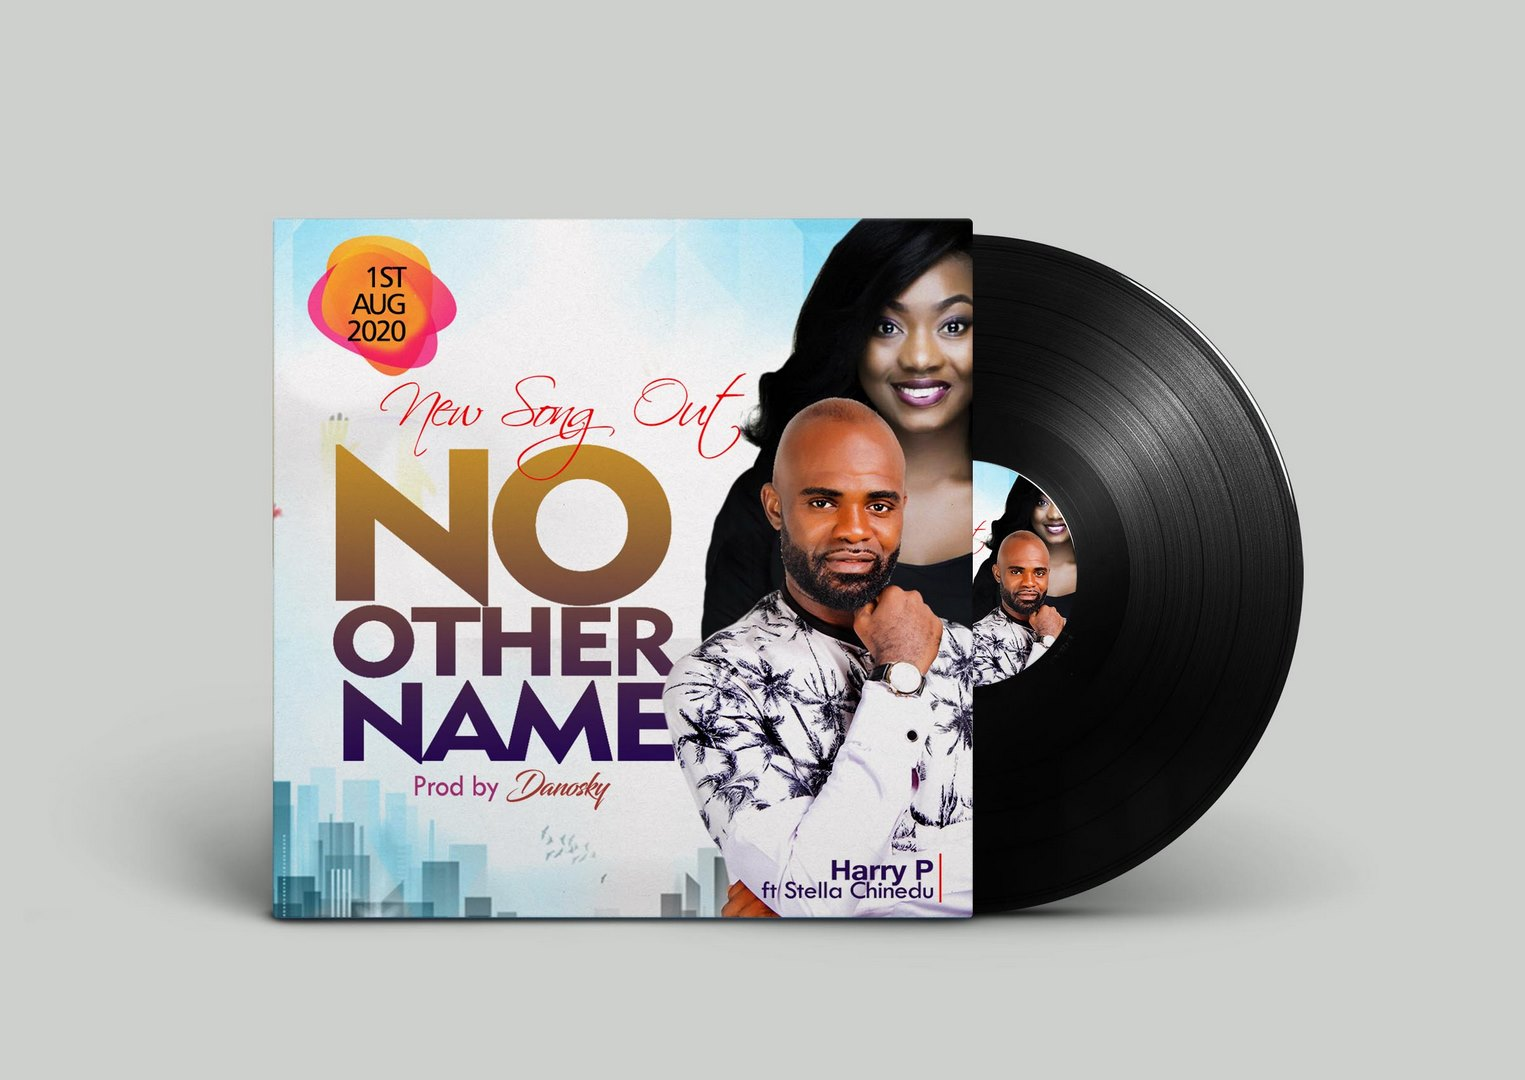 No Other Name - Happy P Ft. Stella Chinedu